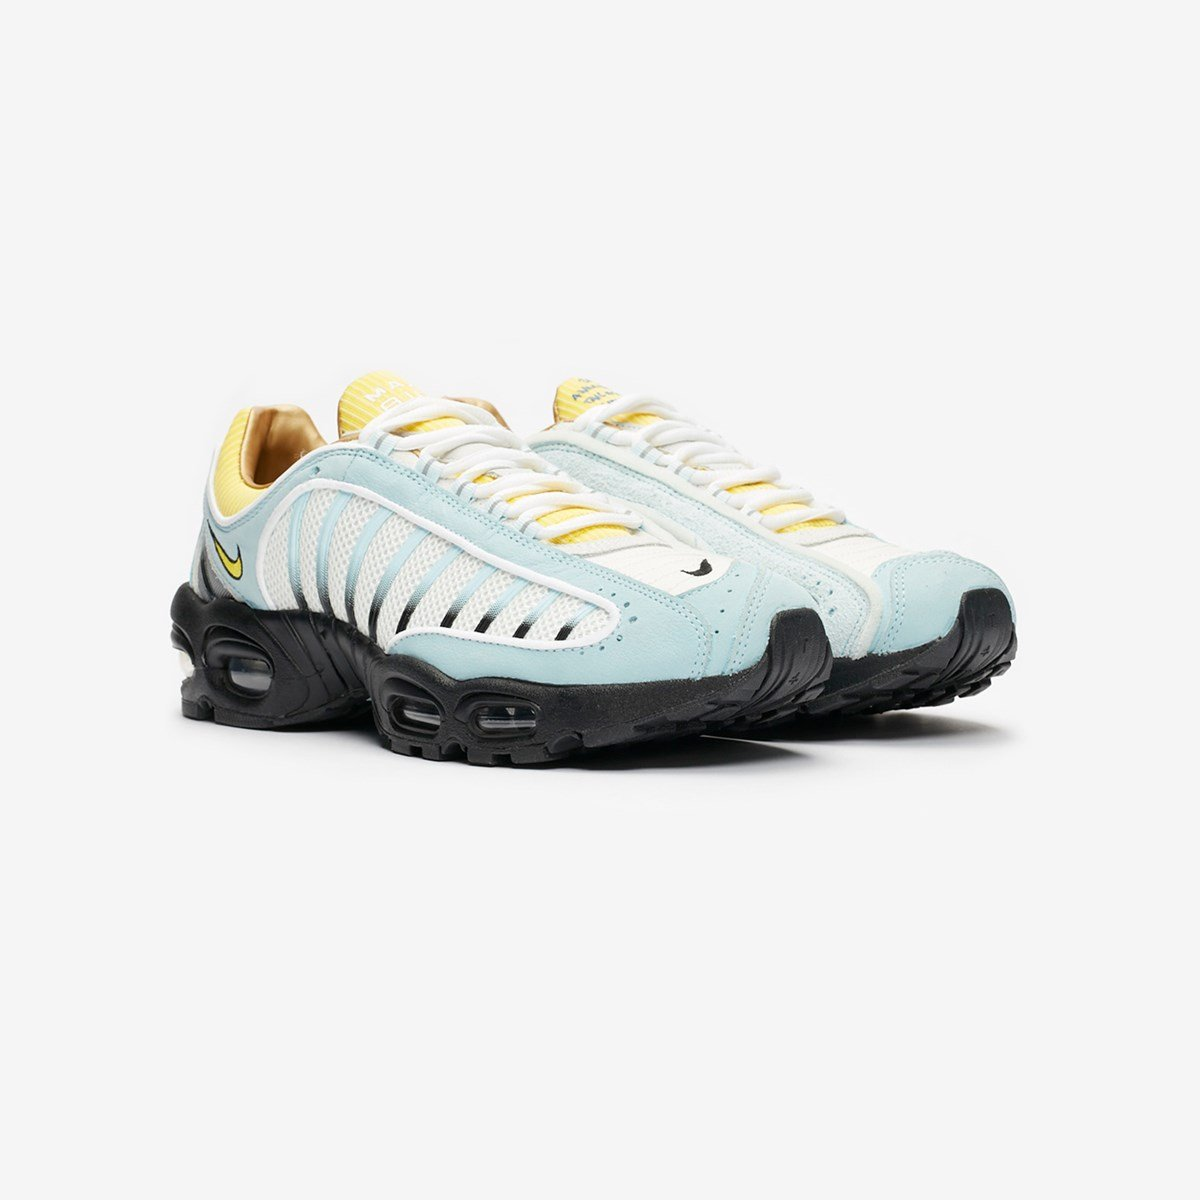 """Nike Air Max Tailwind IV """"20th Anniversary"""" - Ck0901-400 - SNS 